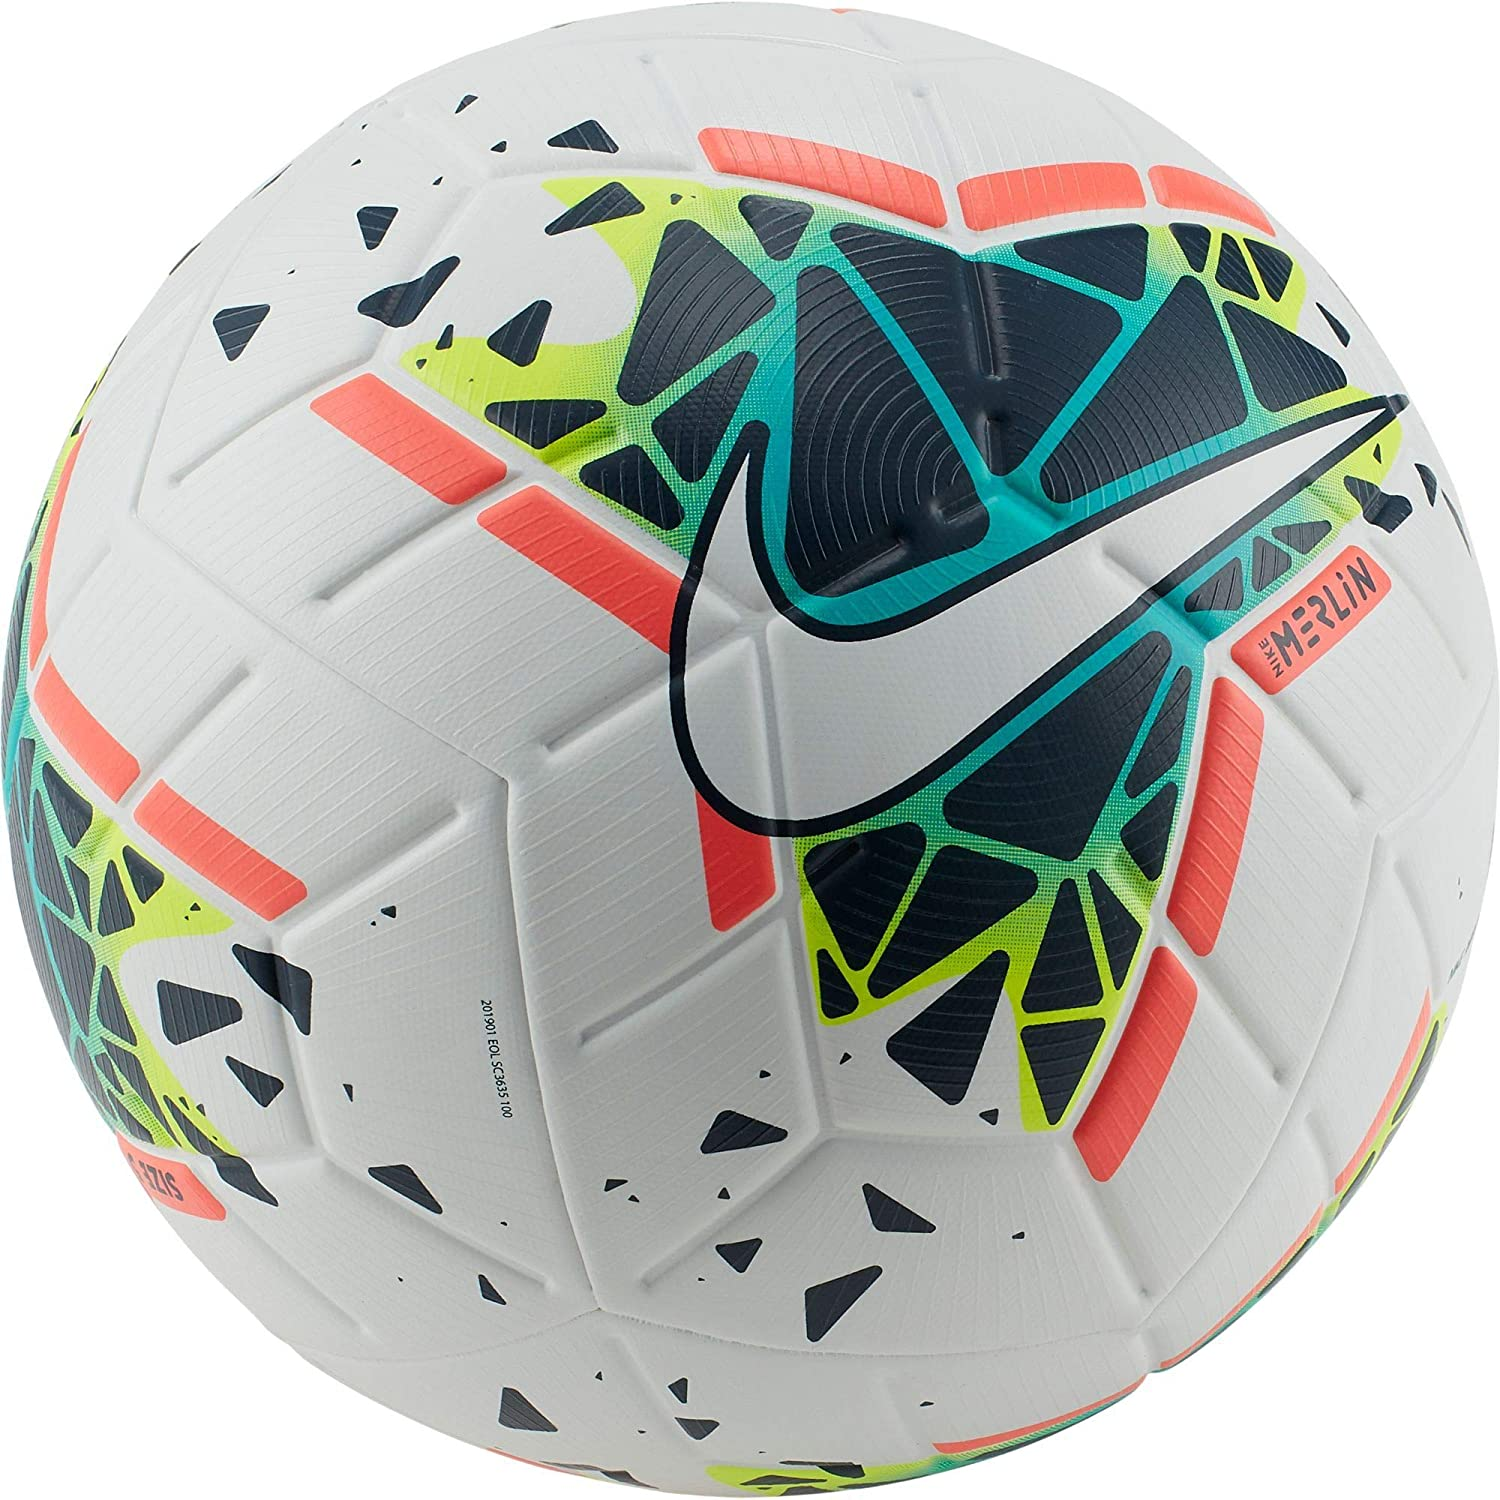 abogado Aleta me quejo  Nike Merlin Football: Amazon.co.uk: Sports & Outdoors